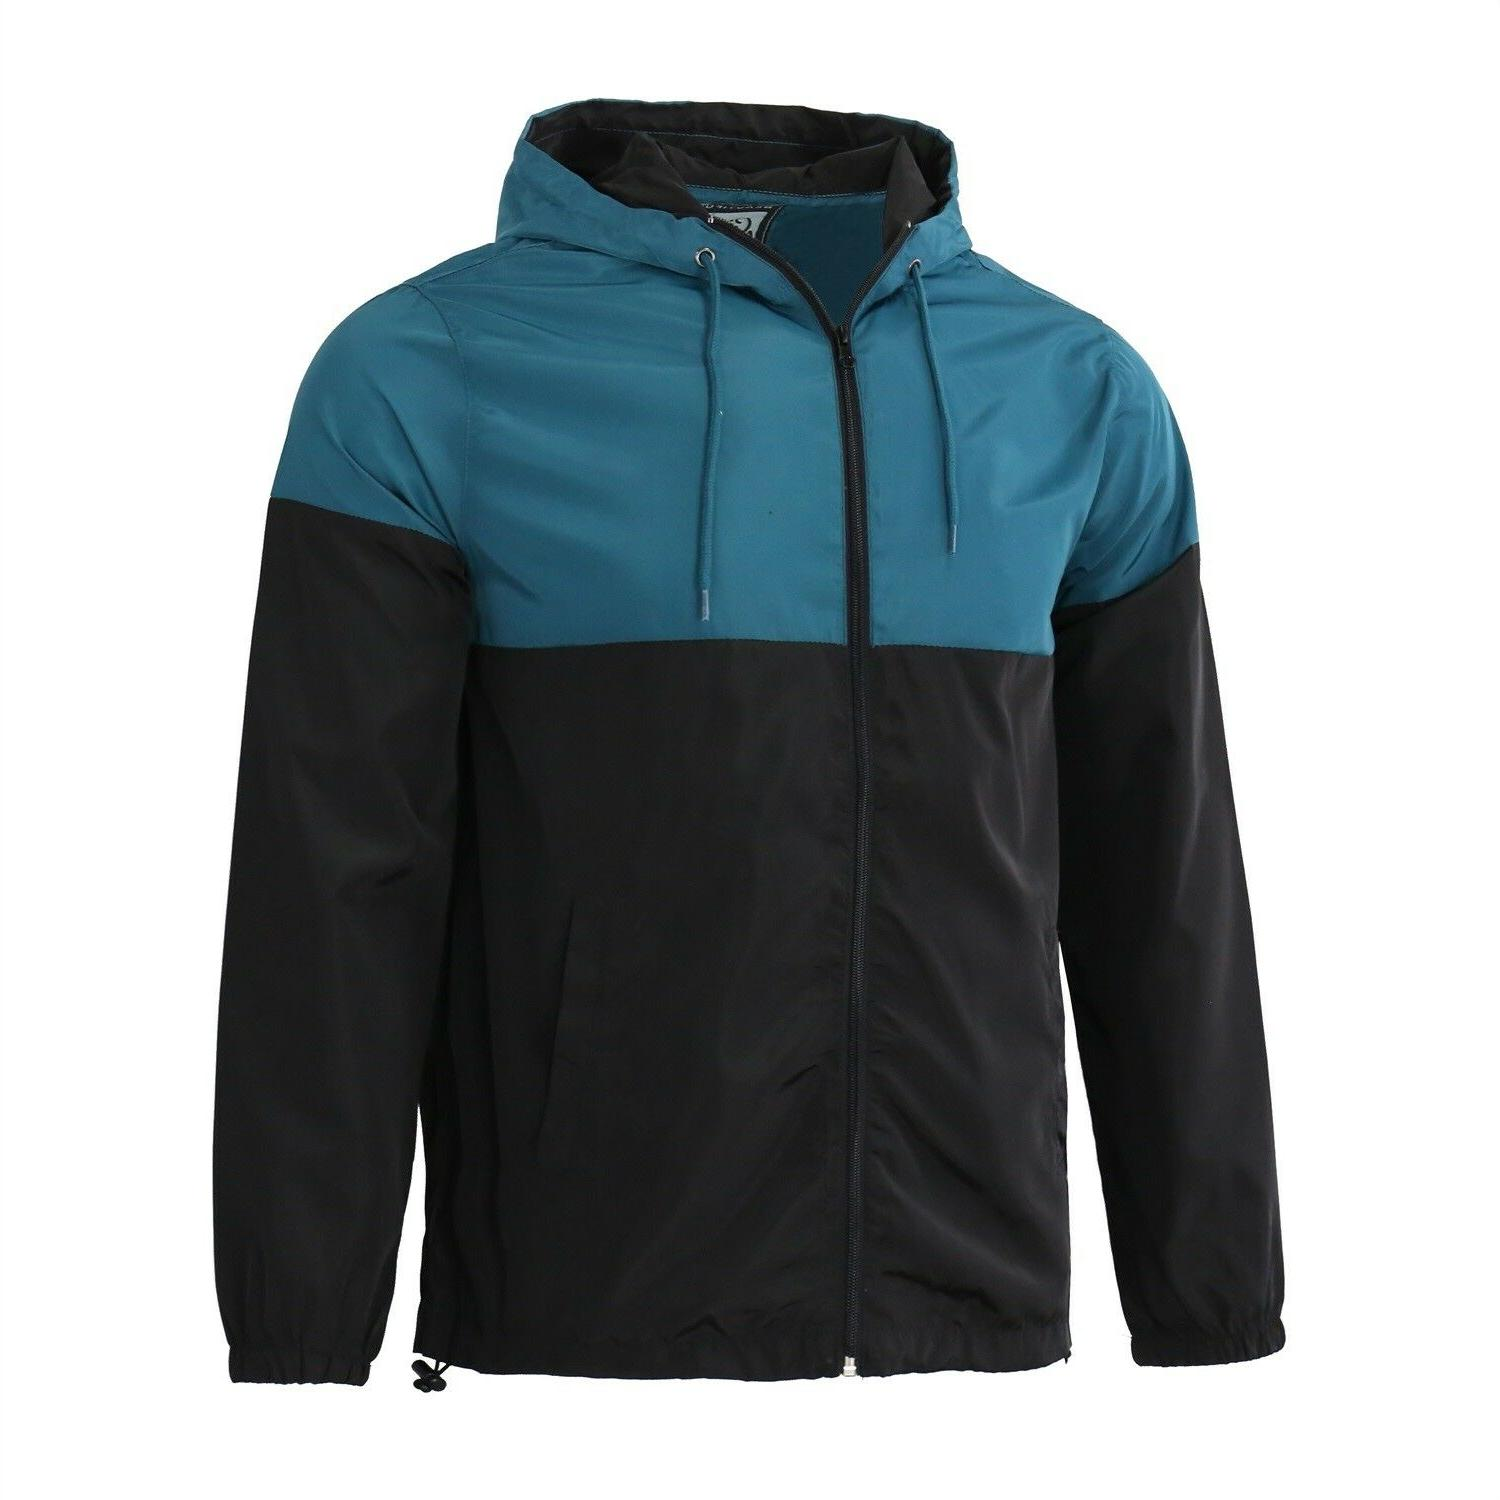 Men's Hooded Lightweight Windproof Outdoor Teal Black